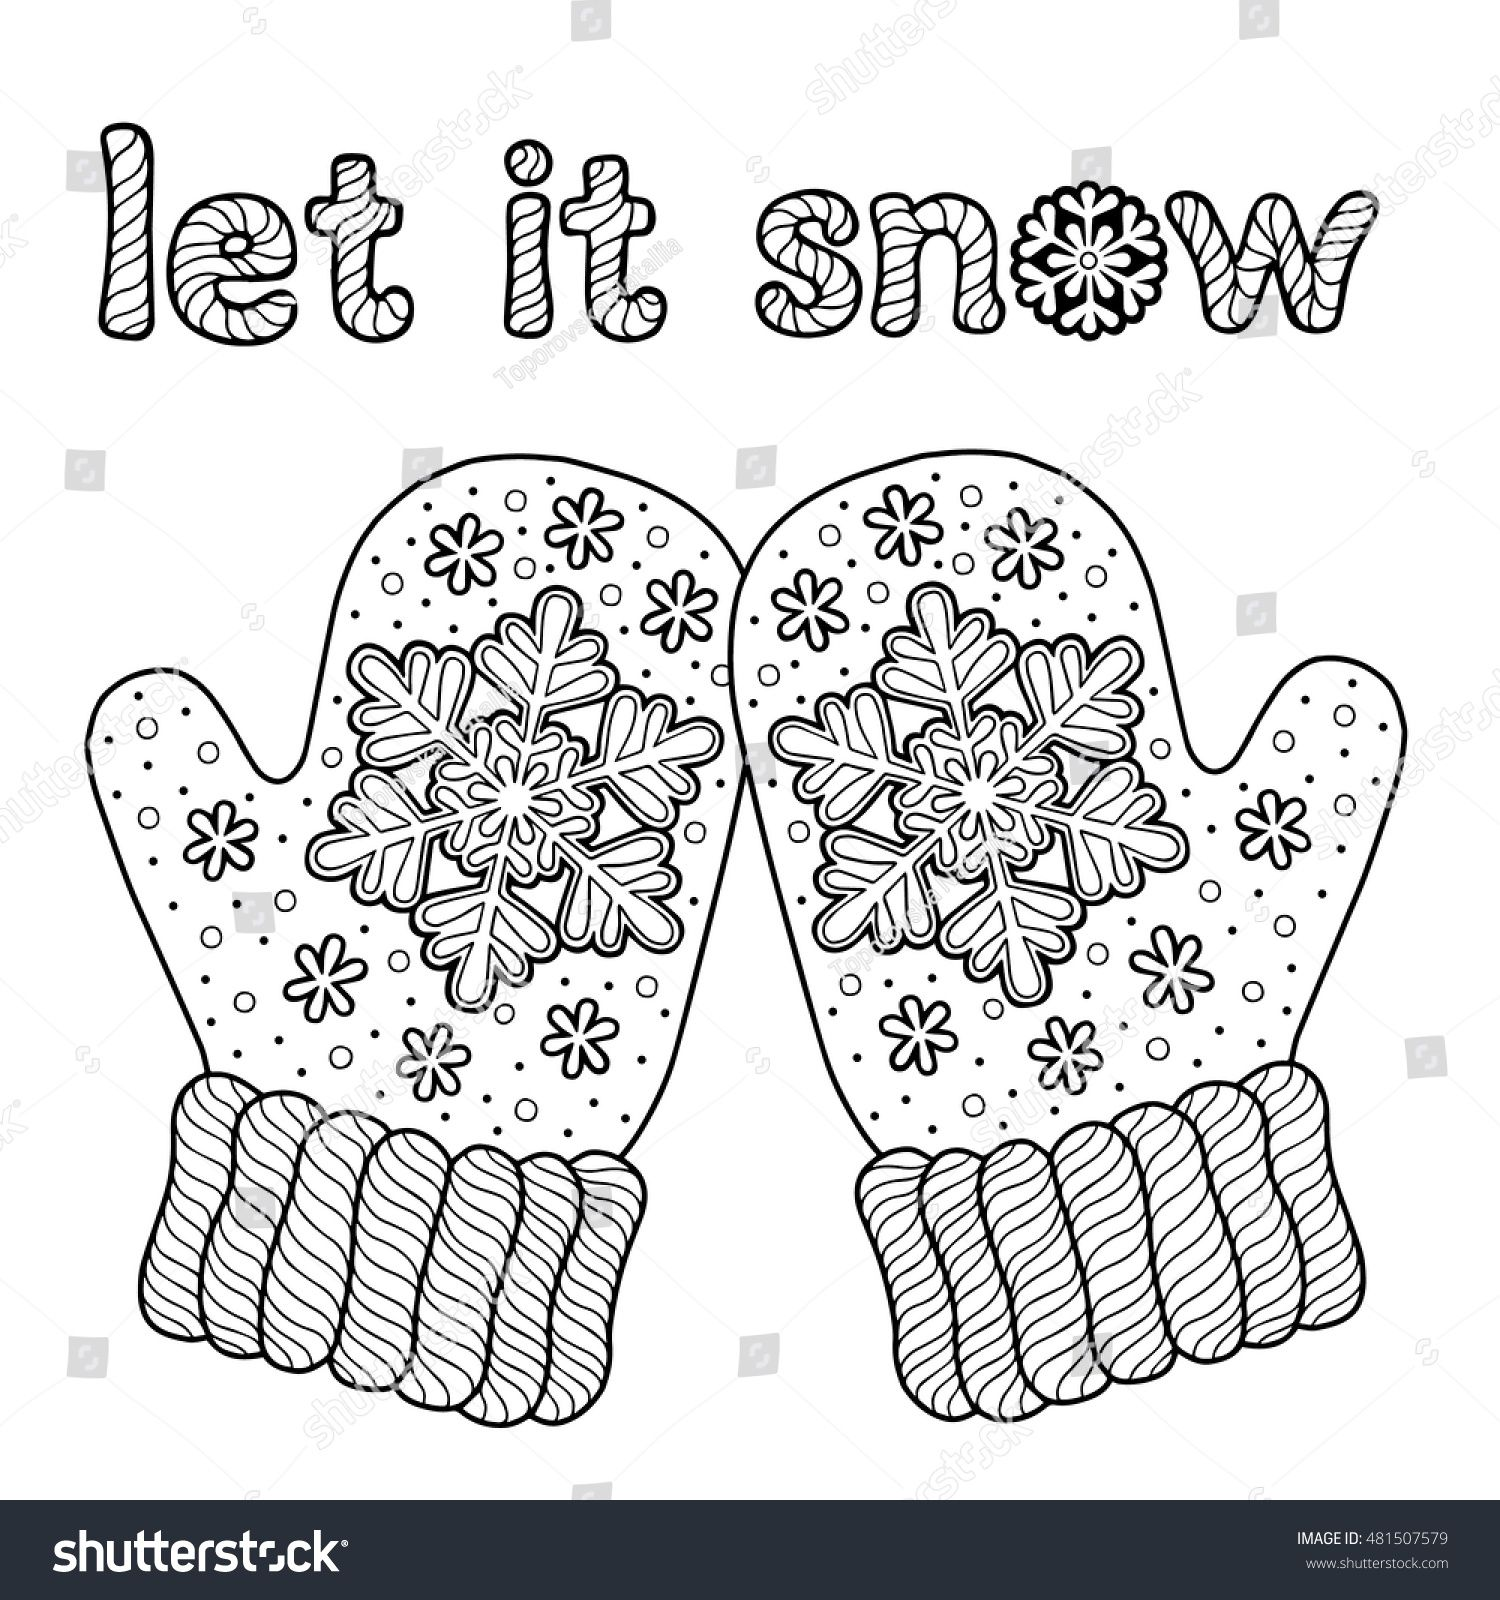 Let it snow. Coloring page for adults. Hand Drawn warm